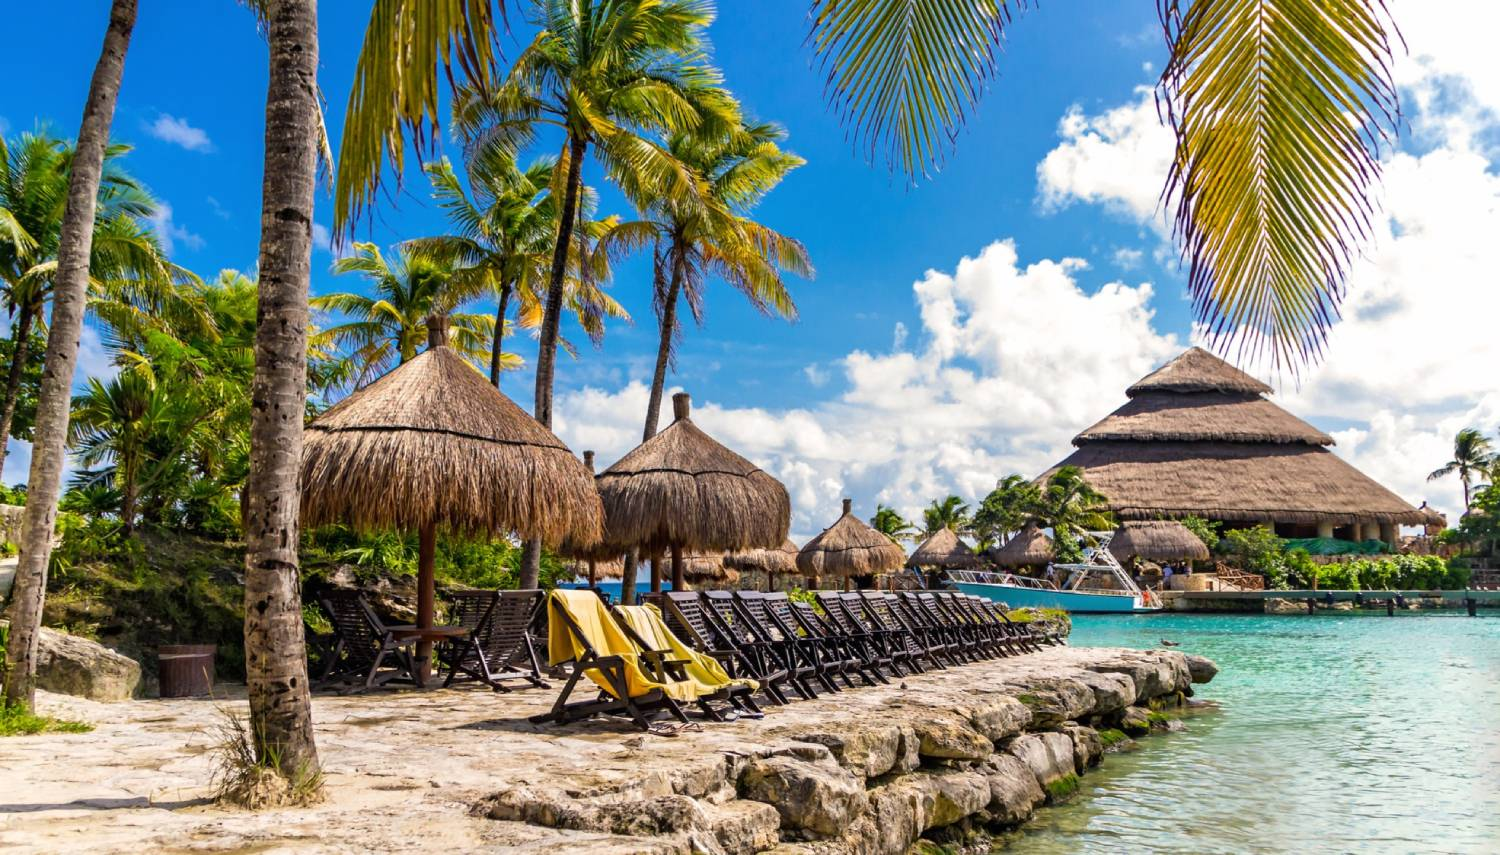 Xcaret - Things To Do In Playa del Carmen